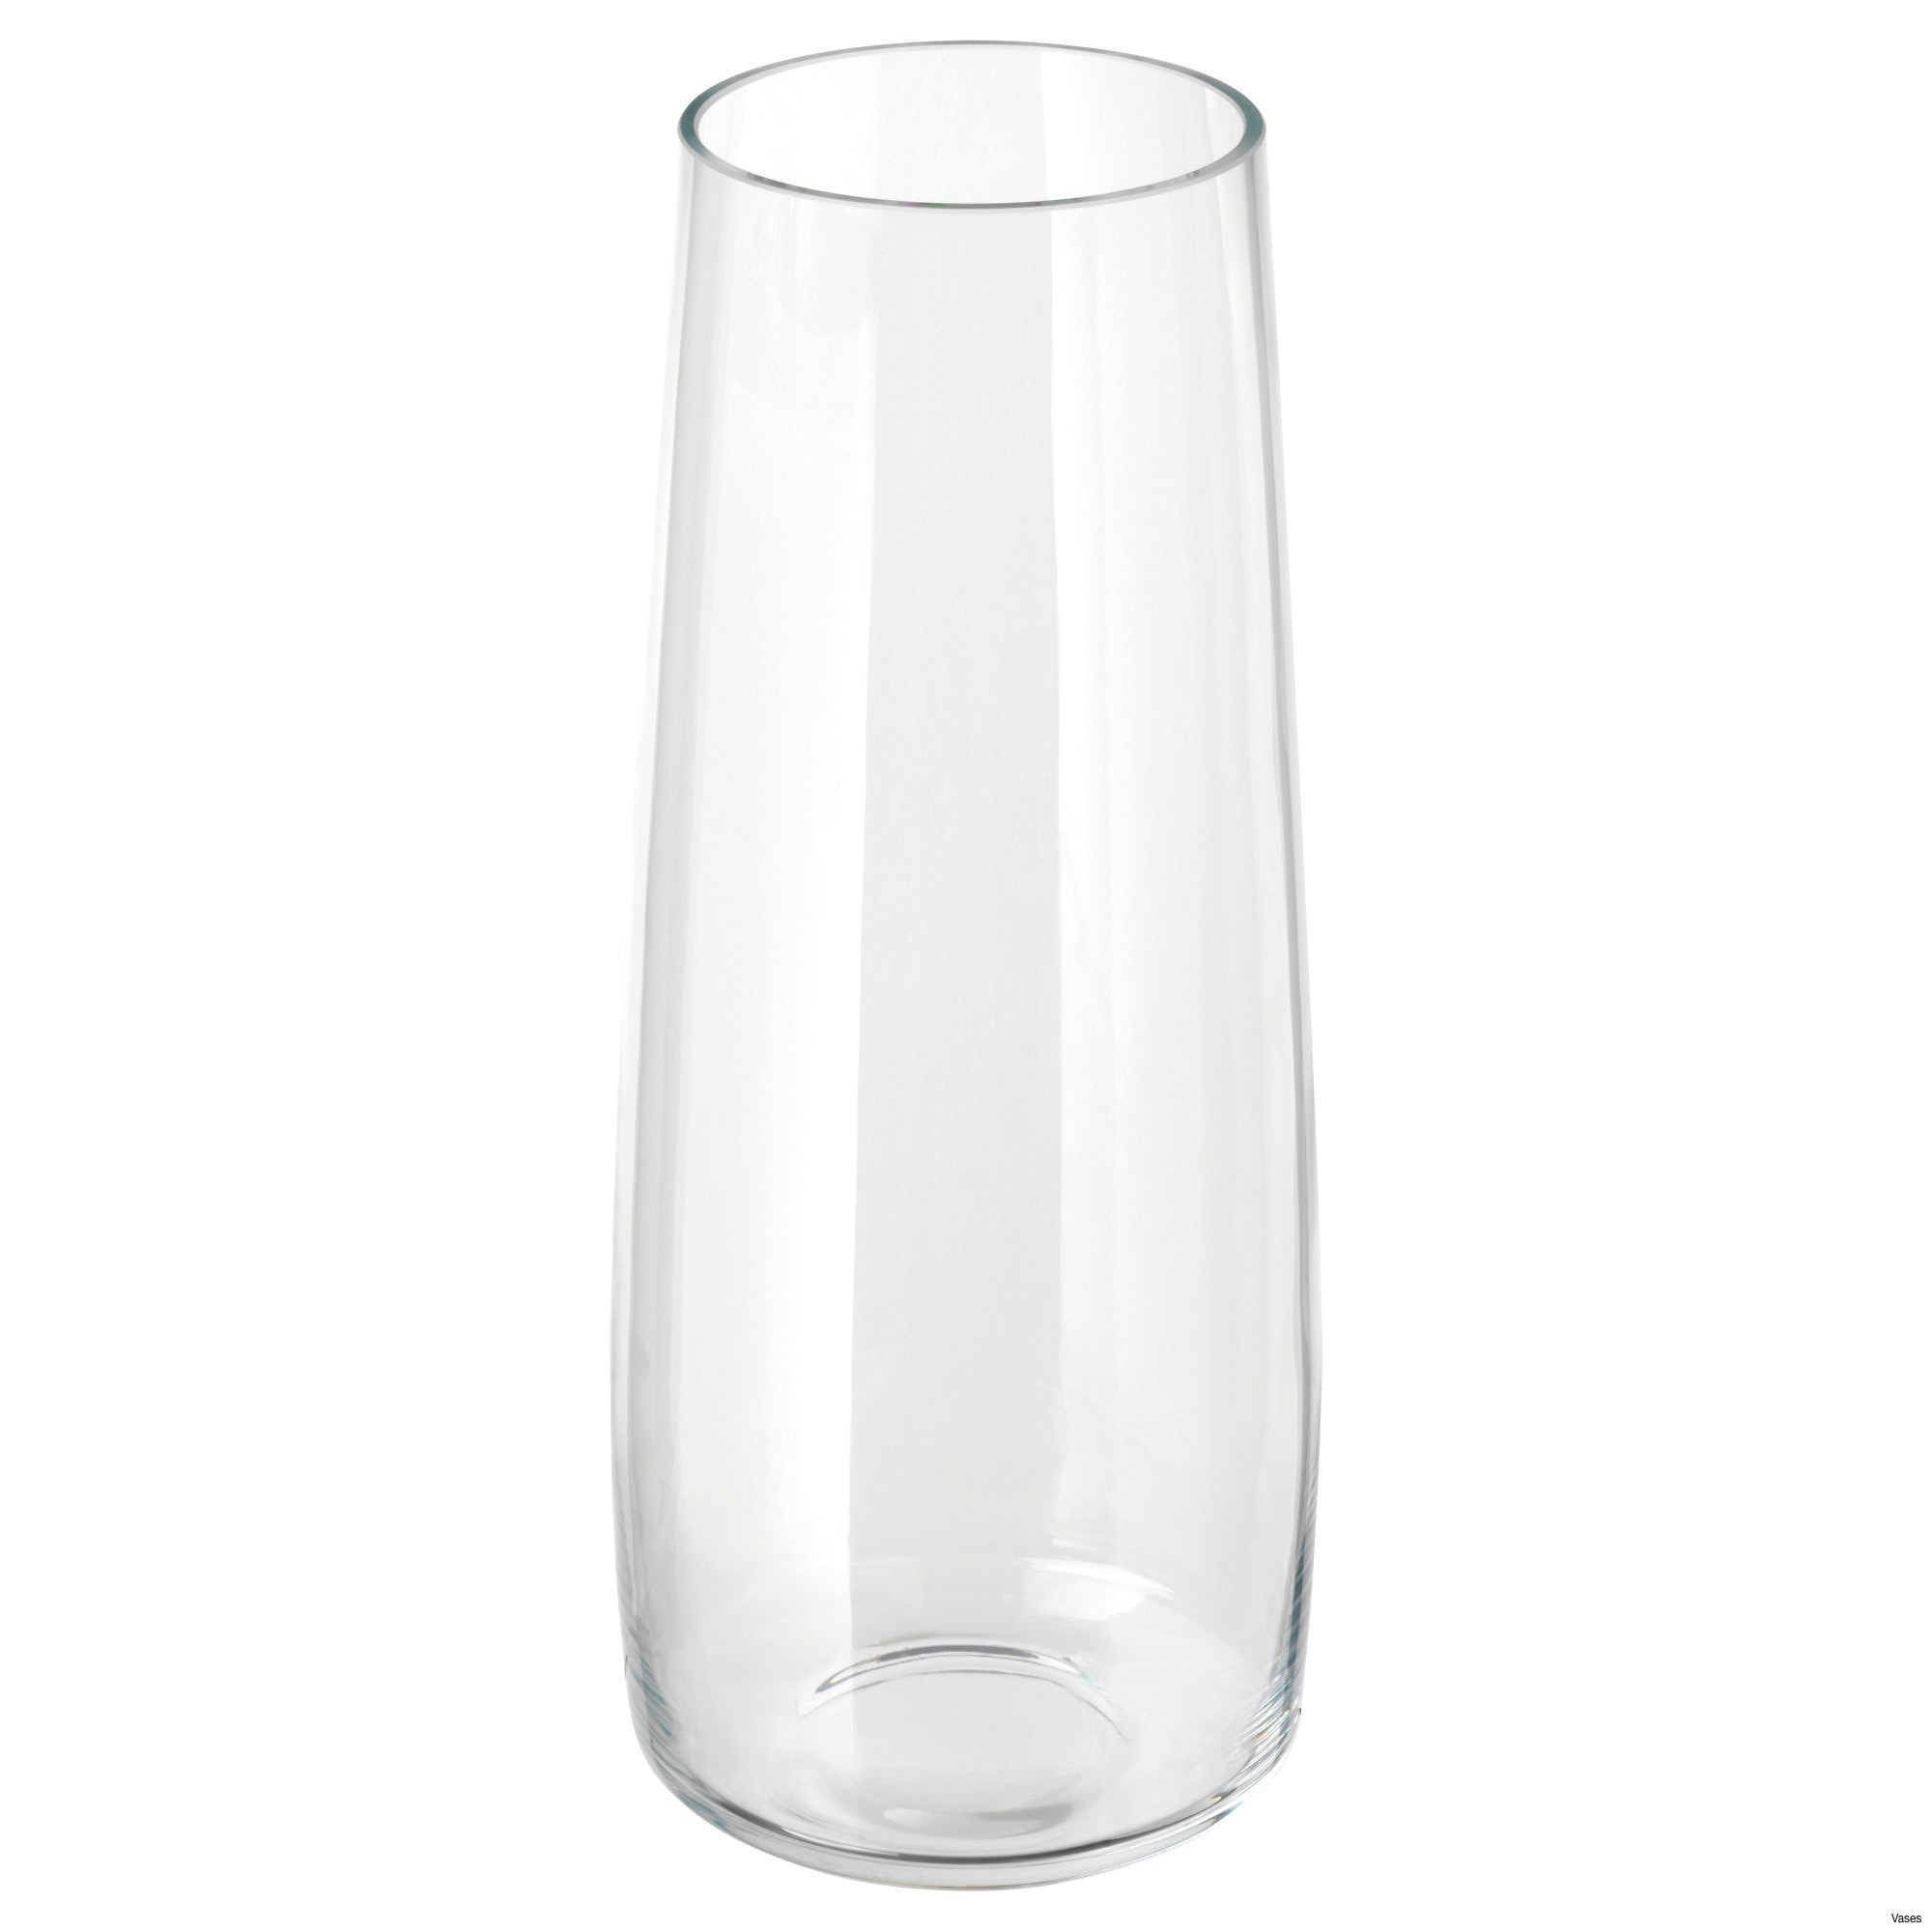 29 Elegant Round Glass Vase 2021 free download round glass vase of round glass vases pictures vases bubble ball discount 15 vase round intended for round glass vases photograph clear glass planters fresh clear glass vases of round glass